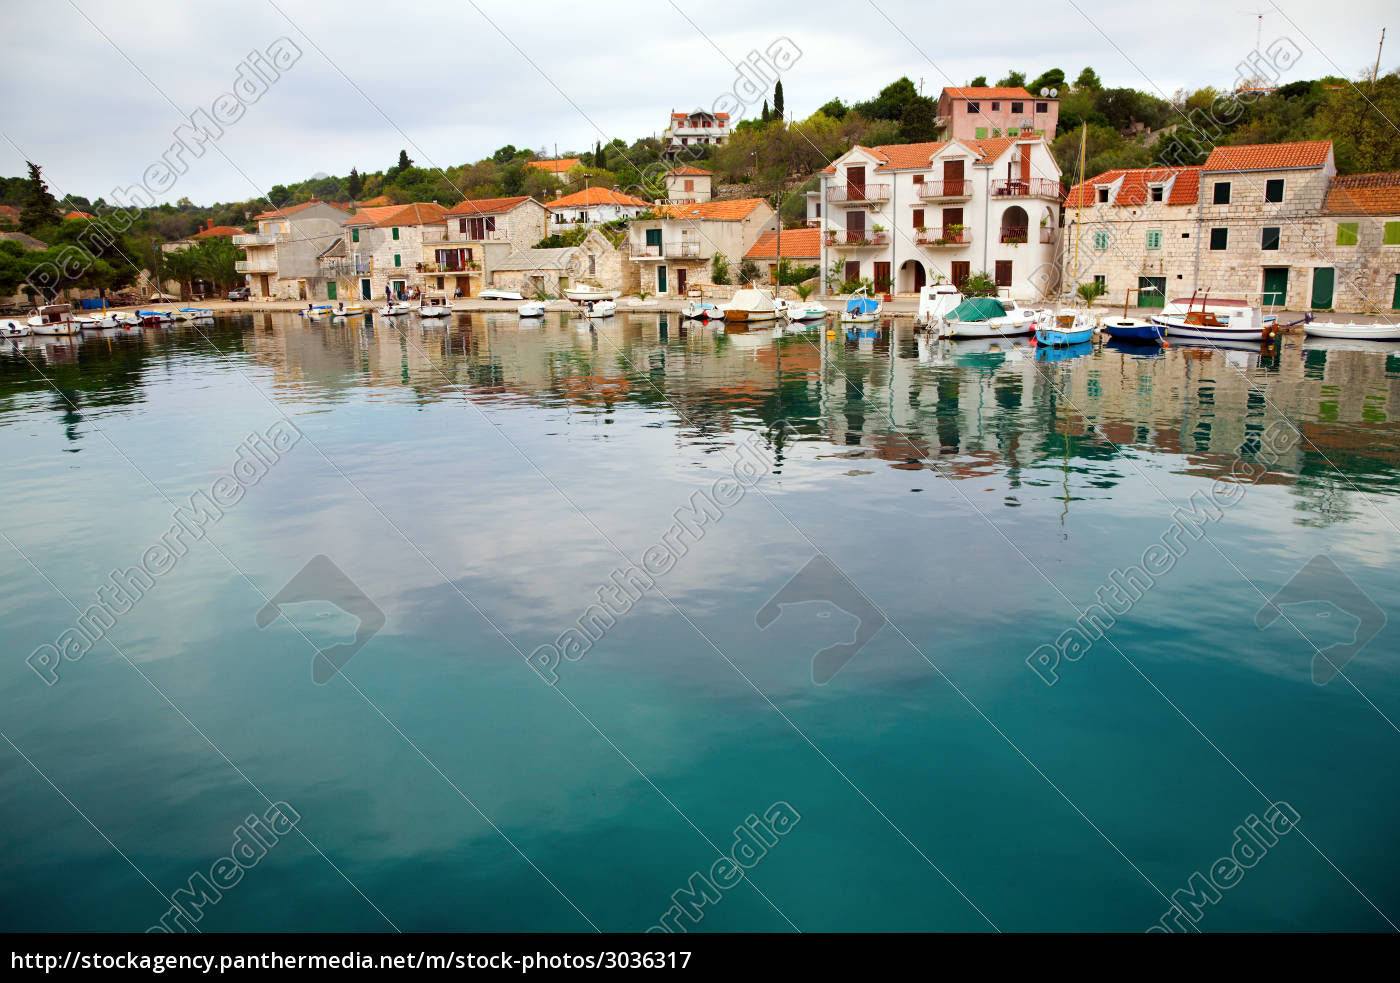 croatian, village - 3036317